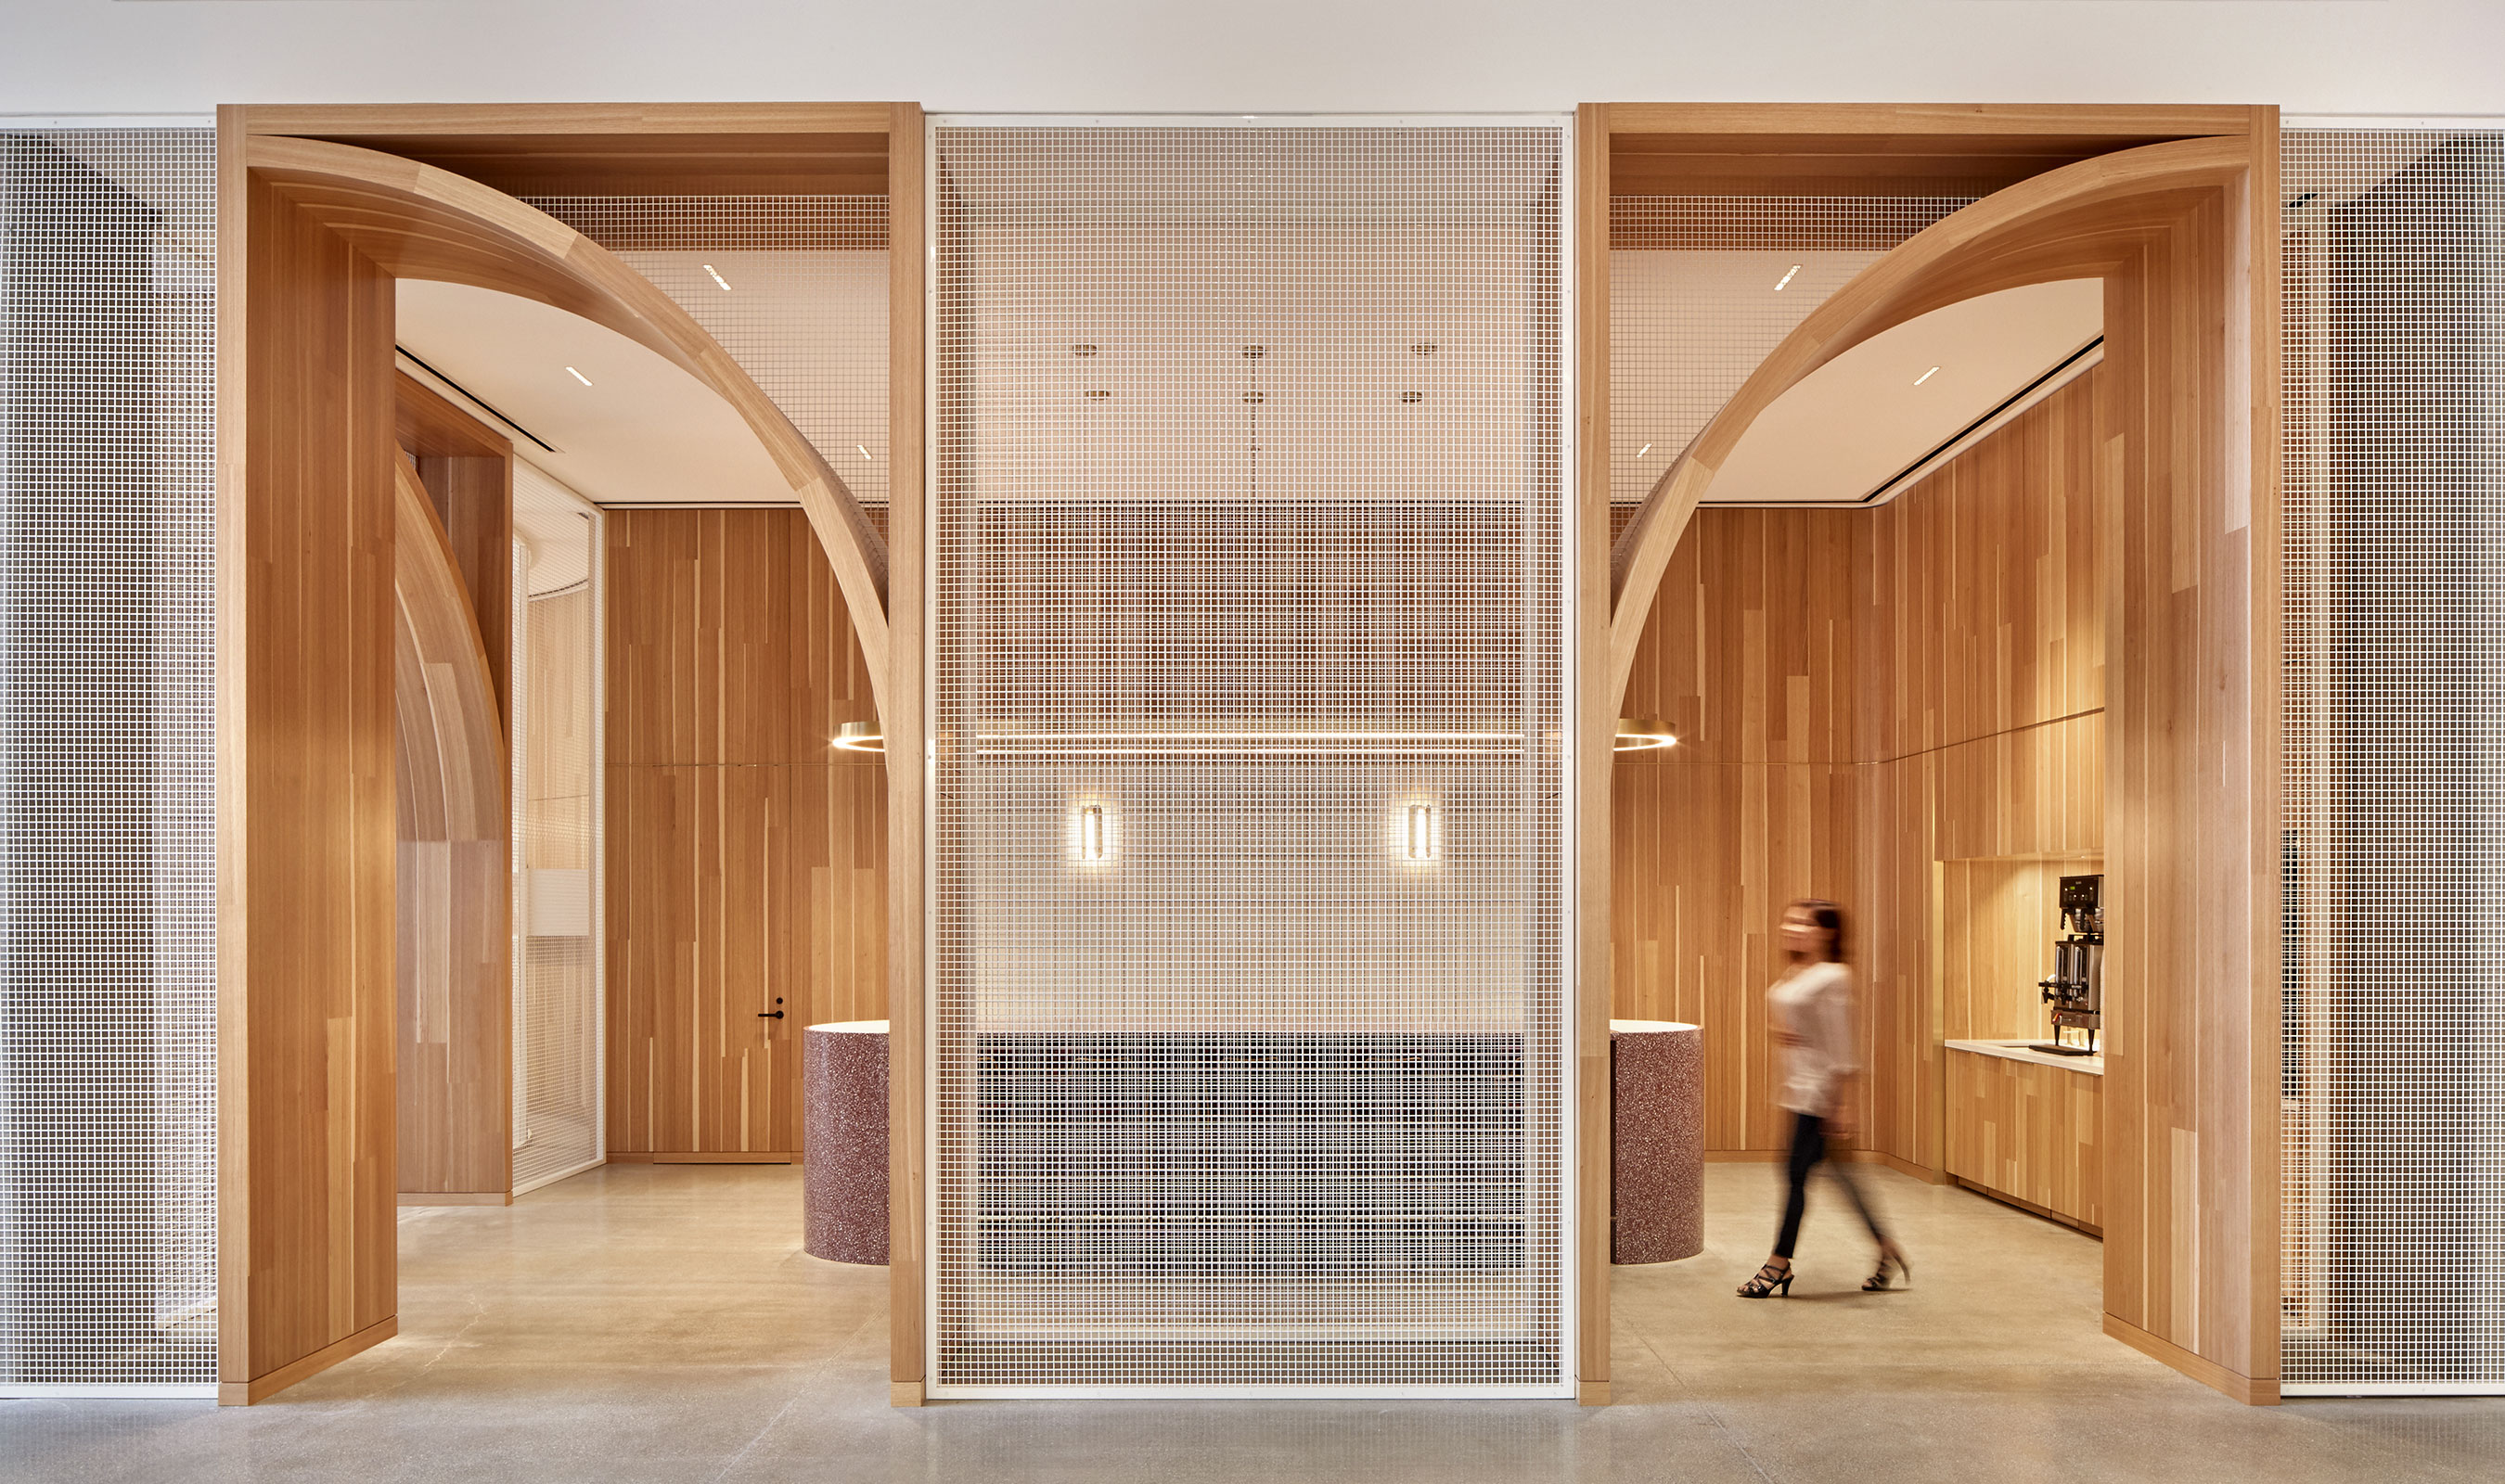 The simple but rigid form of L-81 by Banker Wire juxtaposed against the natural wood helps to give this corporate space an open and airy aesthetic